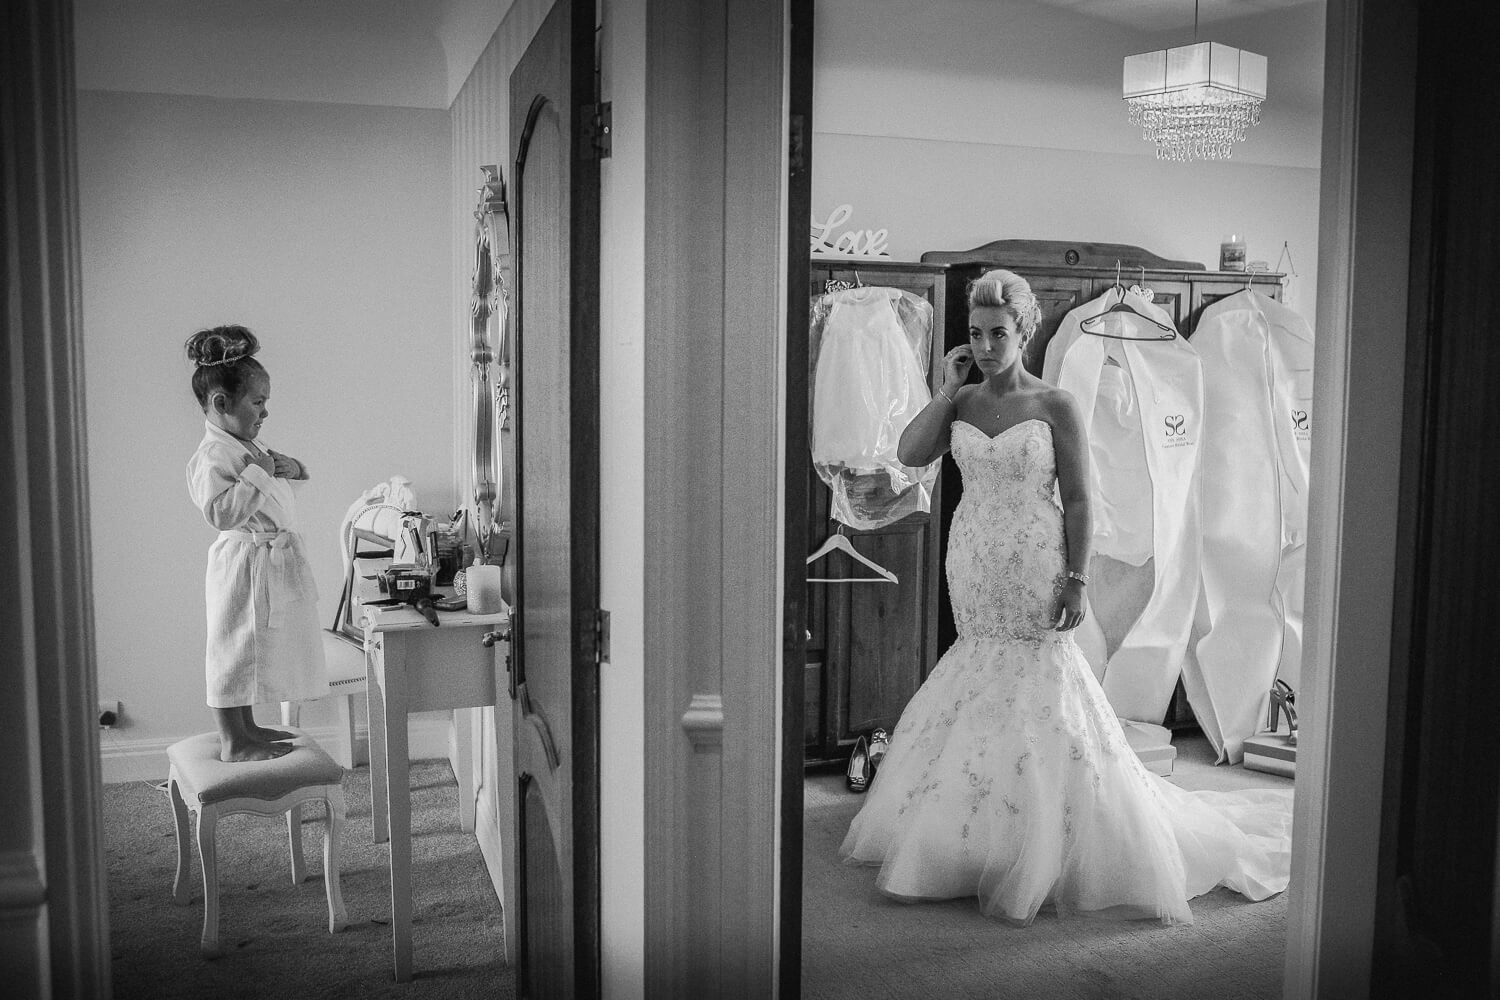 Little girl and bride getting ready on either side of wall. Documentary wedding photography